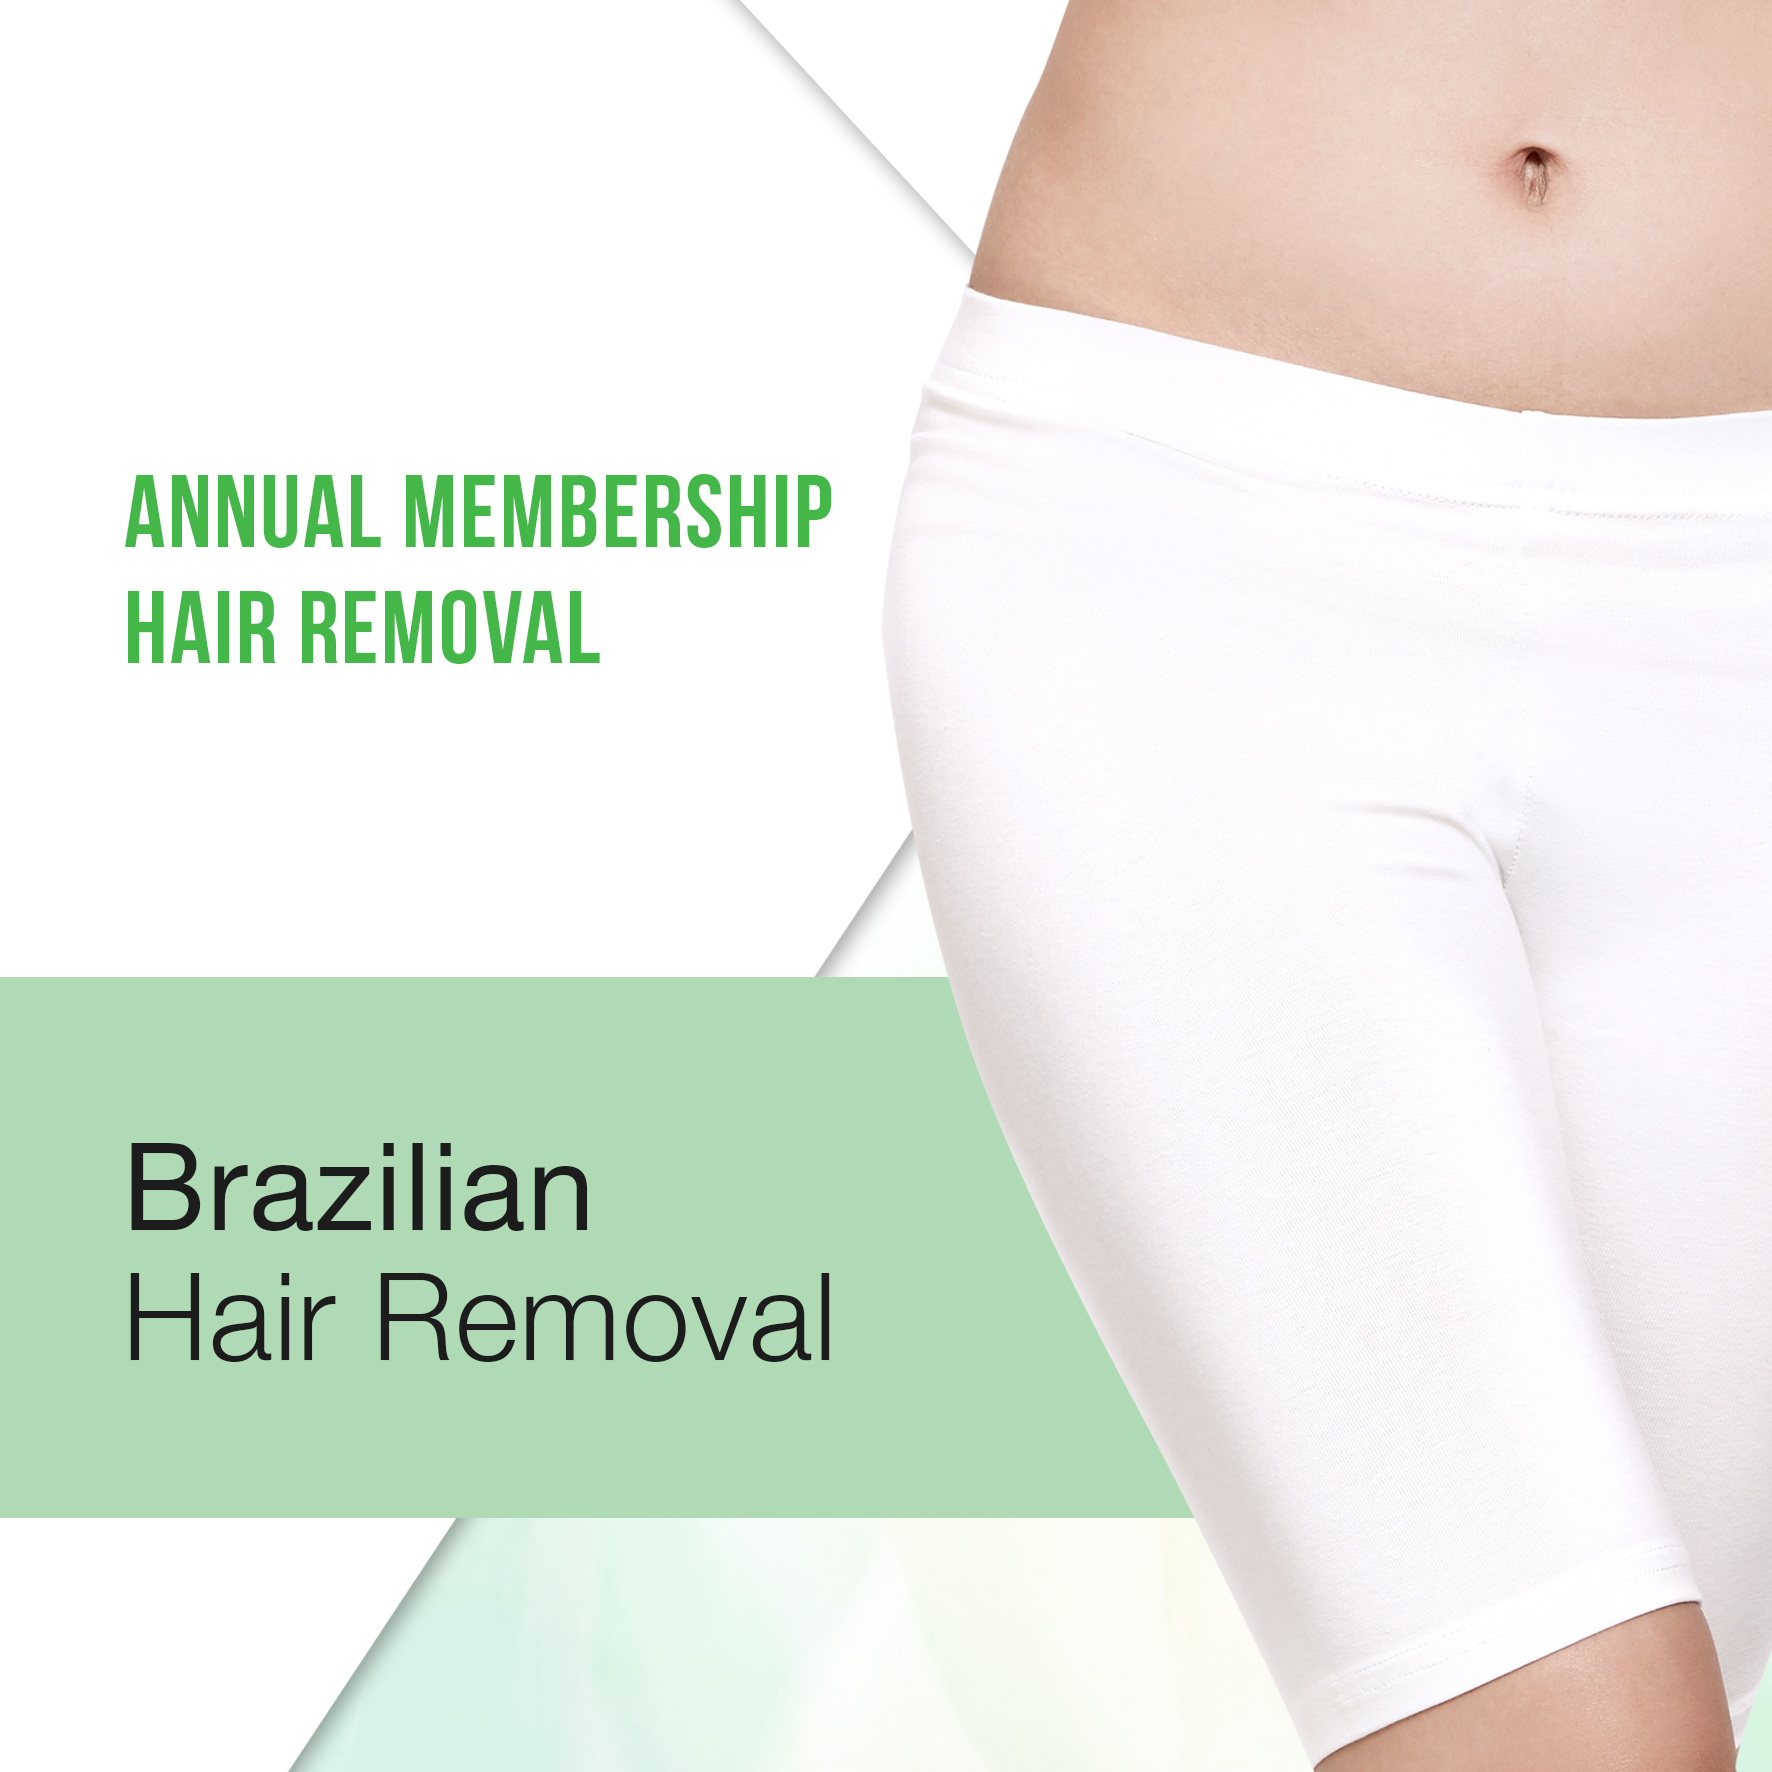 Annual Membership : Brazilian Hair Removal